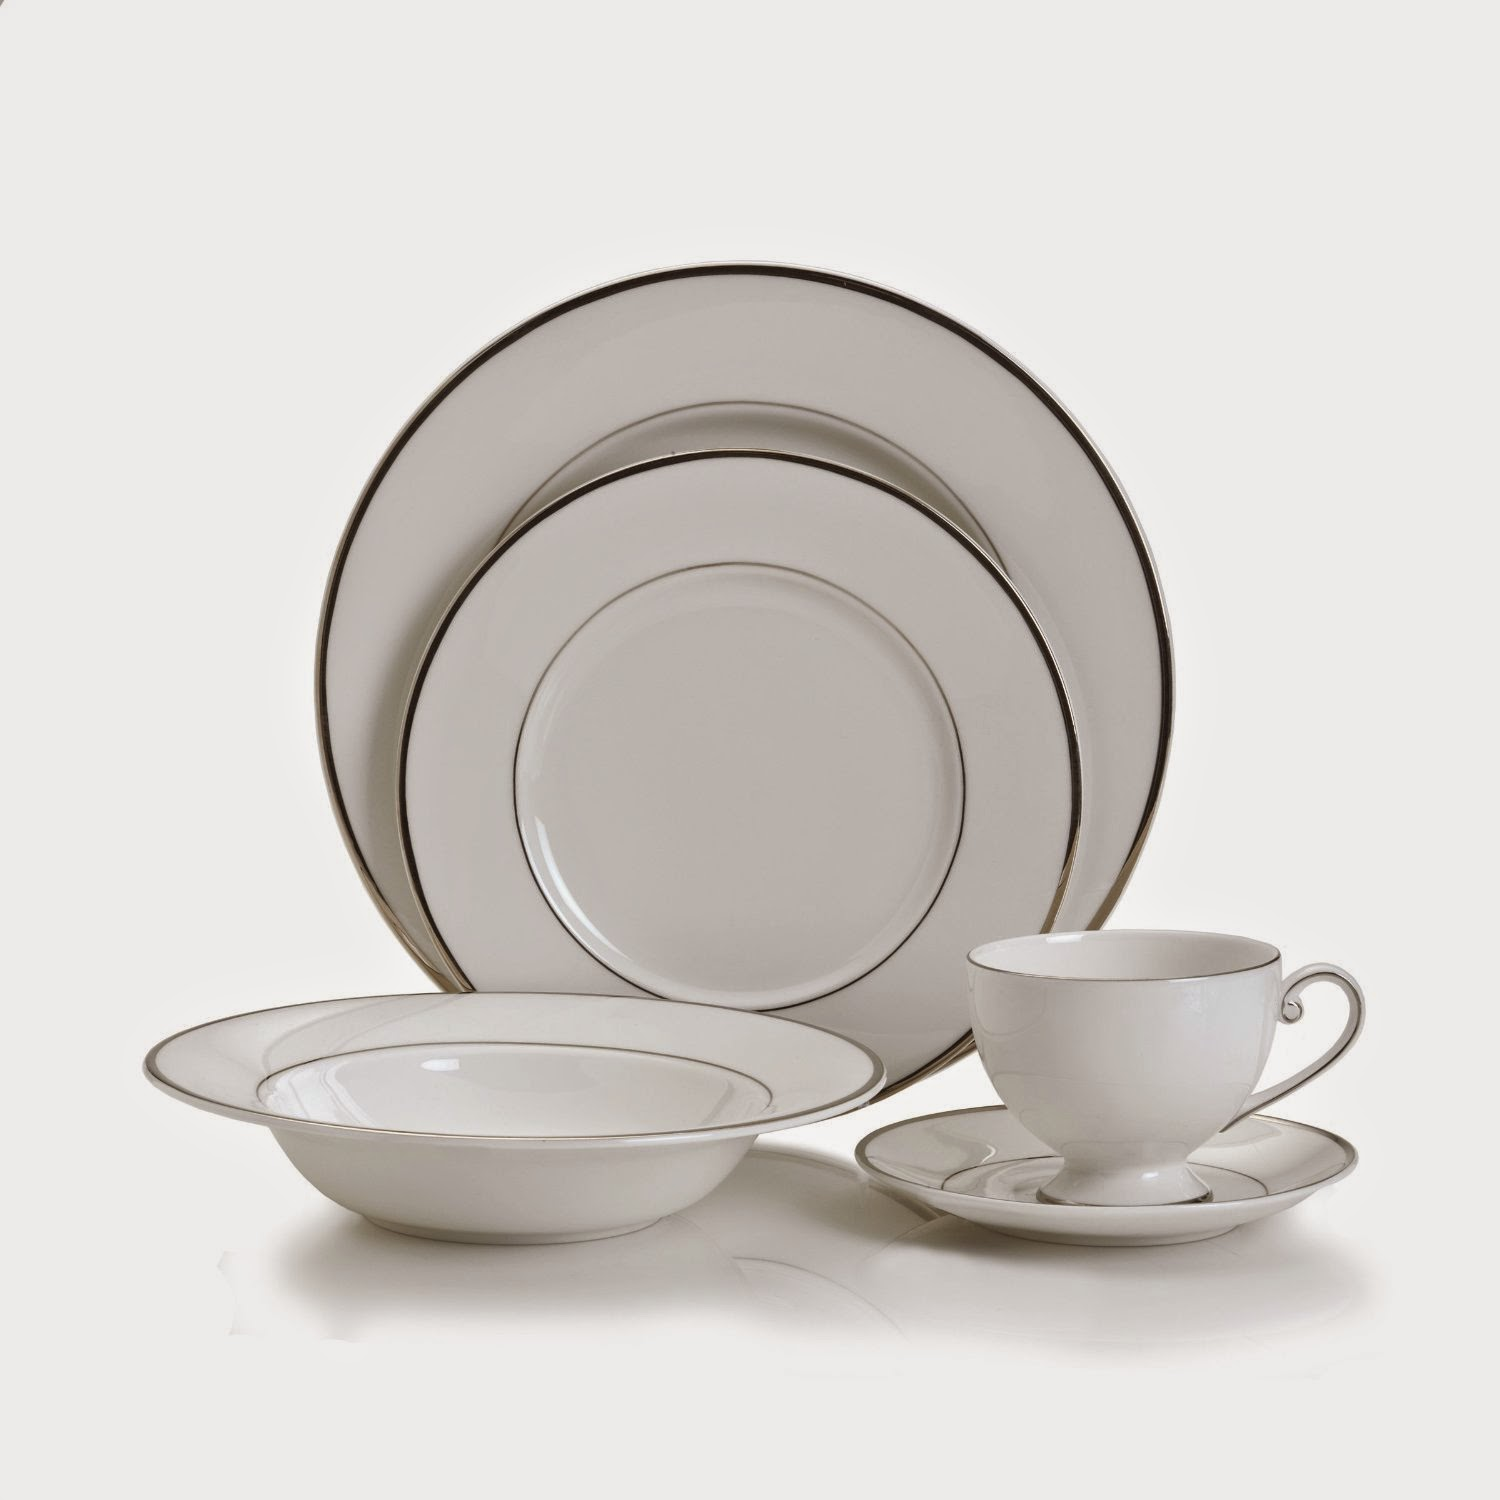 Corelle Impressions 20-Piece Dinnerware Set Service for 4 Thymeless Herbs | The Dinnerware Shop  sc 1 st  The Dinnerware Shop & Corelle Impressions 20-Piece Dinnerware Set Service for 4 ...